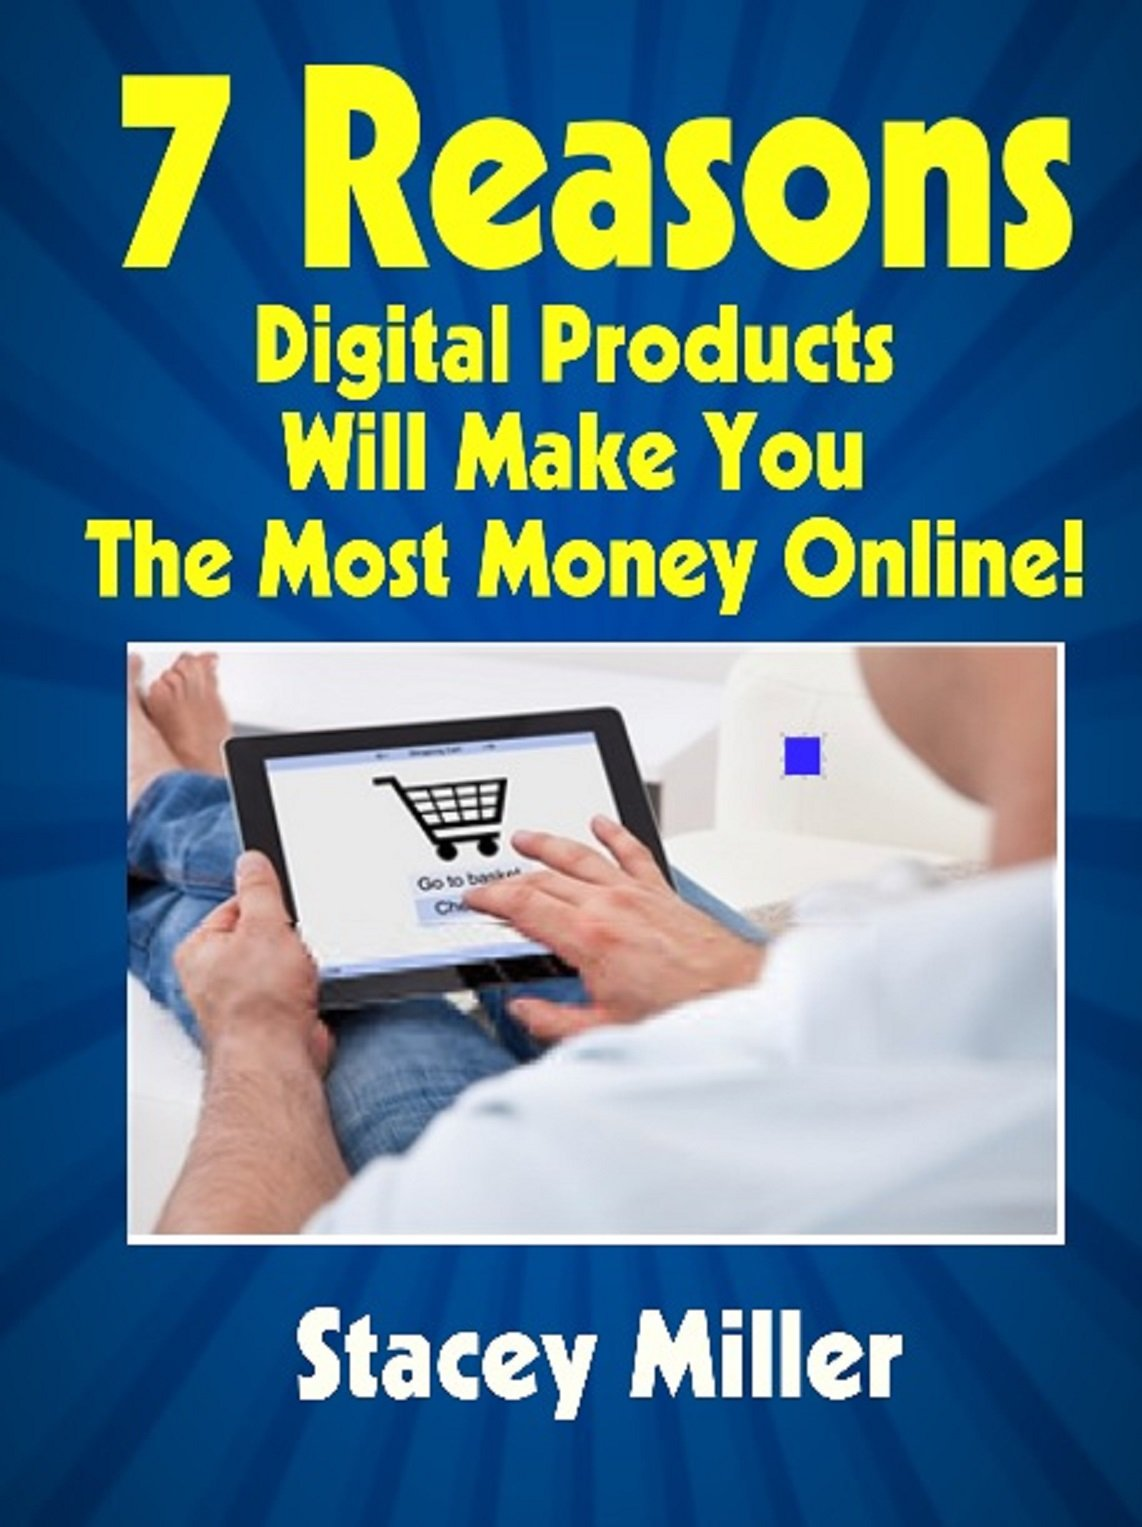 7 Reasons Digital Products Will Make You The Most Money Online!: How to Generate Income with Digital Products in the Next 24 Hours.